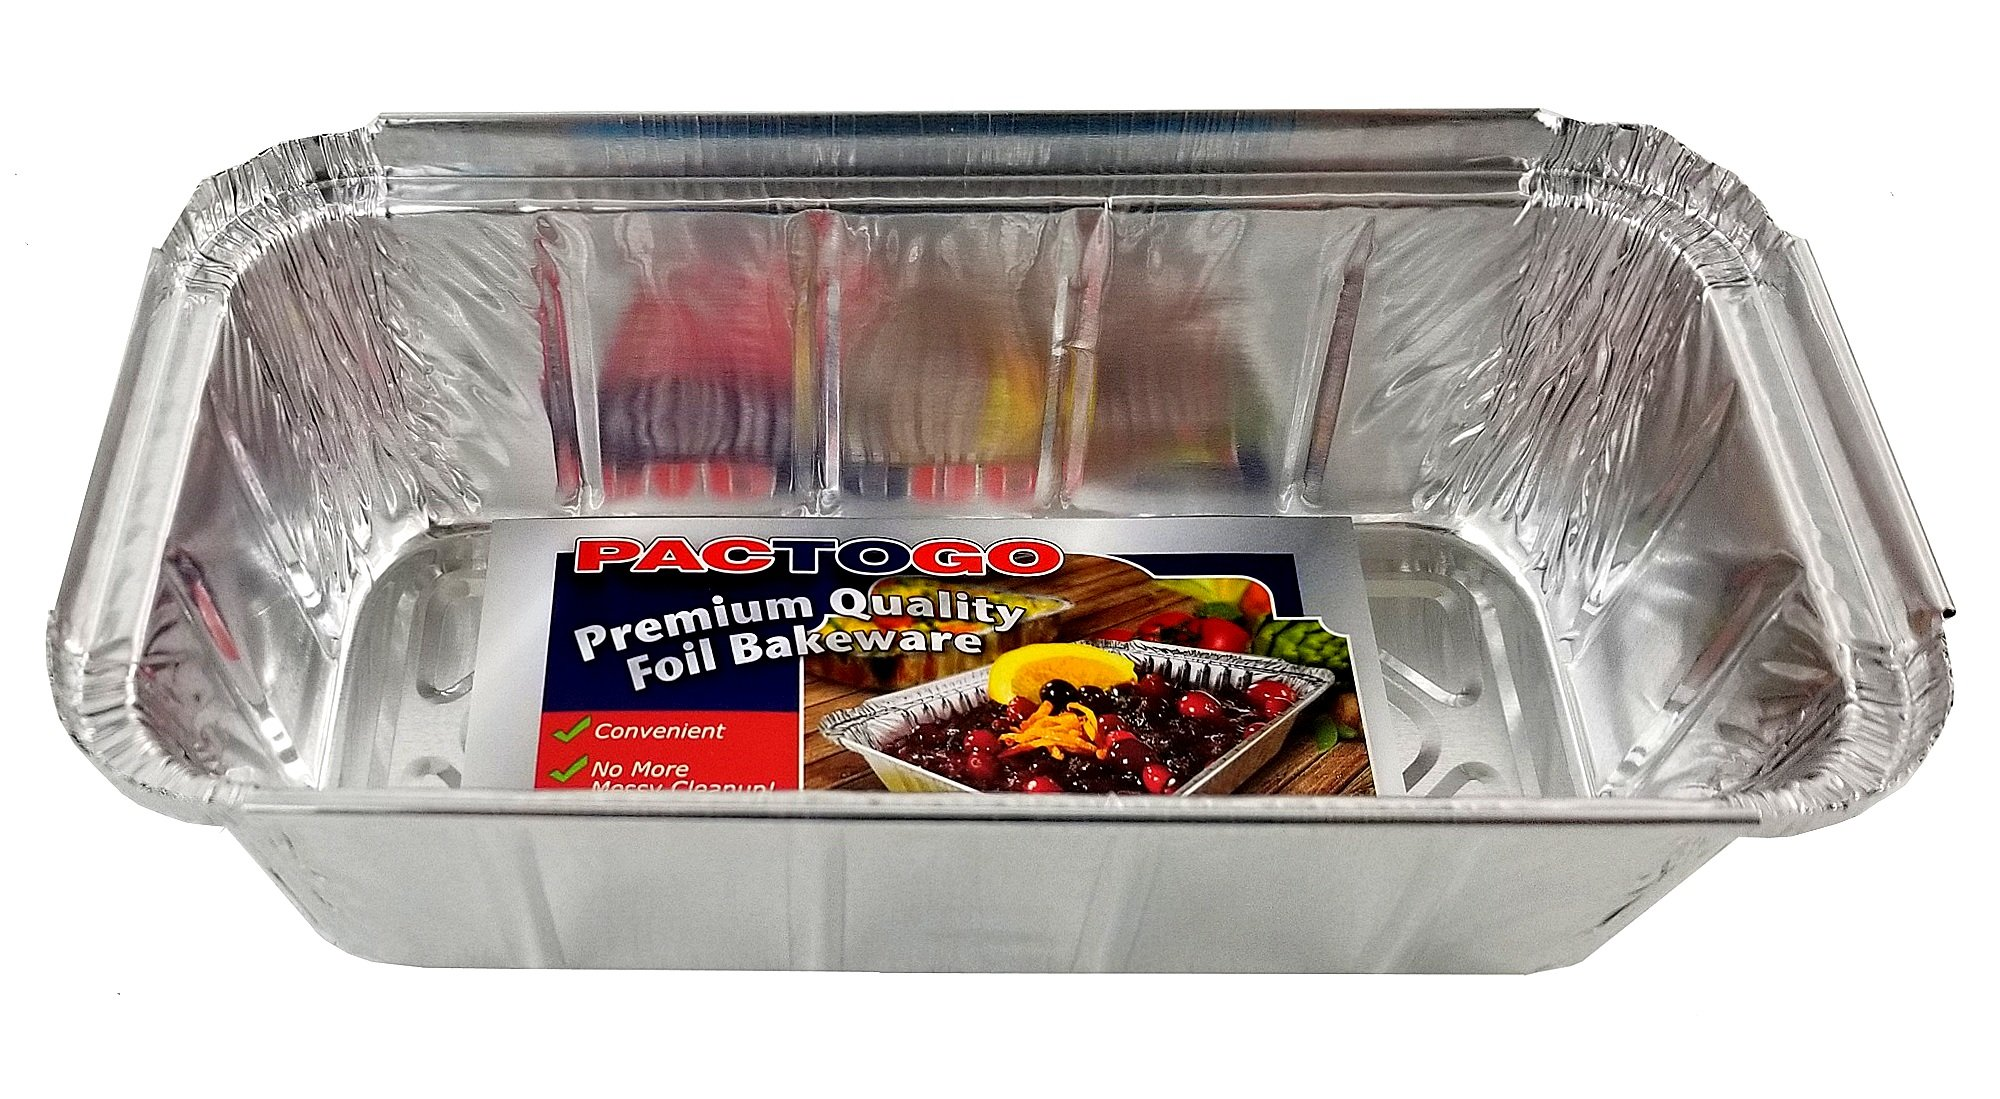 Pactogo 1 1/2 lb. IVC Disposable Aluminum Foil Loaf Bread Pan w/Board Lid (8'' x 4.1'' x 2.2'') - Heavy Duty Made in USA (Pack of 50 Sets) by PACTOGO (Image #2)